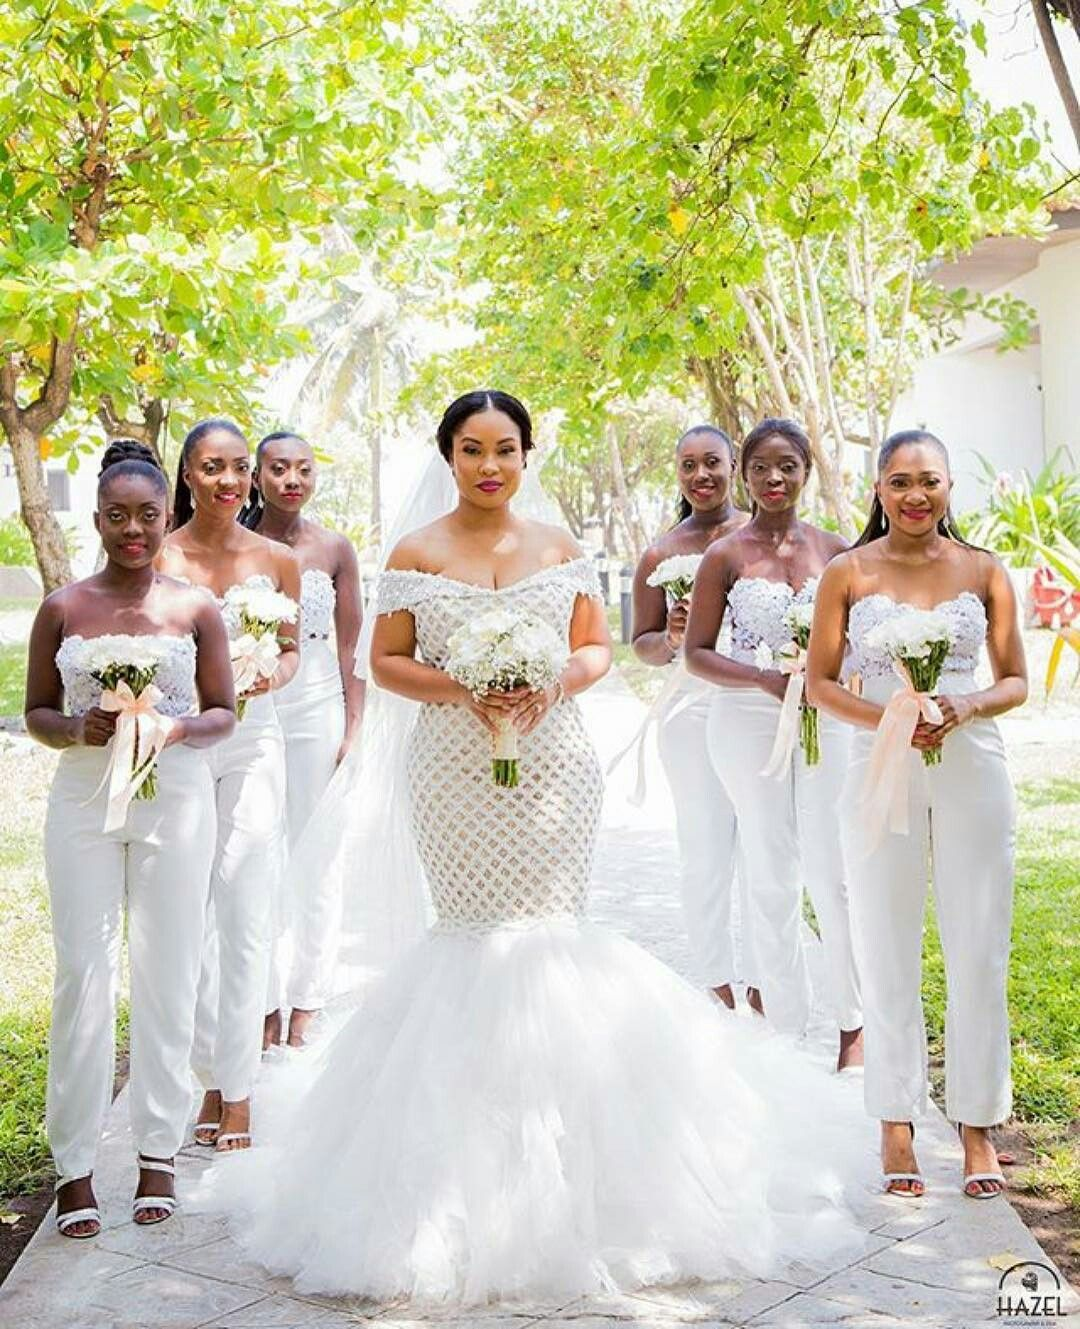 The hottest wedding trend 25 stylish bridesmaids jumpsuits 10 love her maids are in pants ombrellifo Gallery